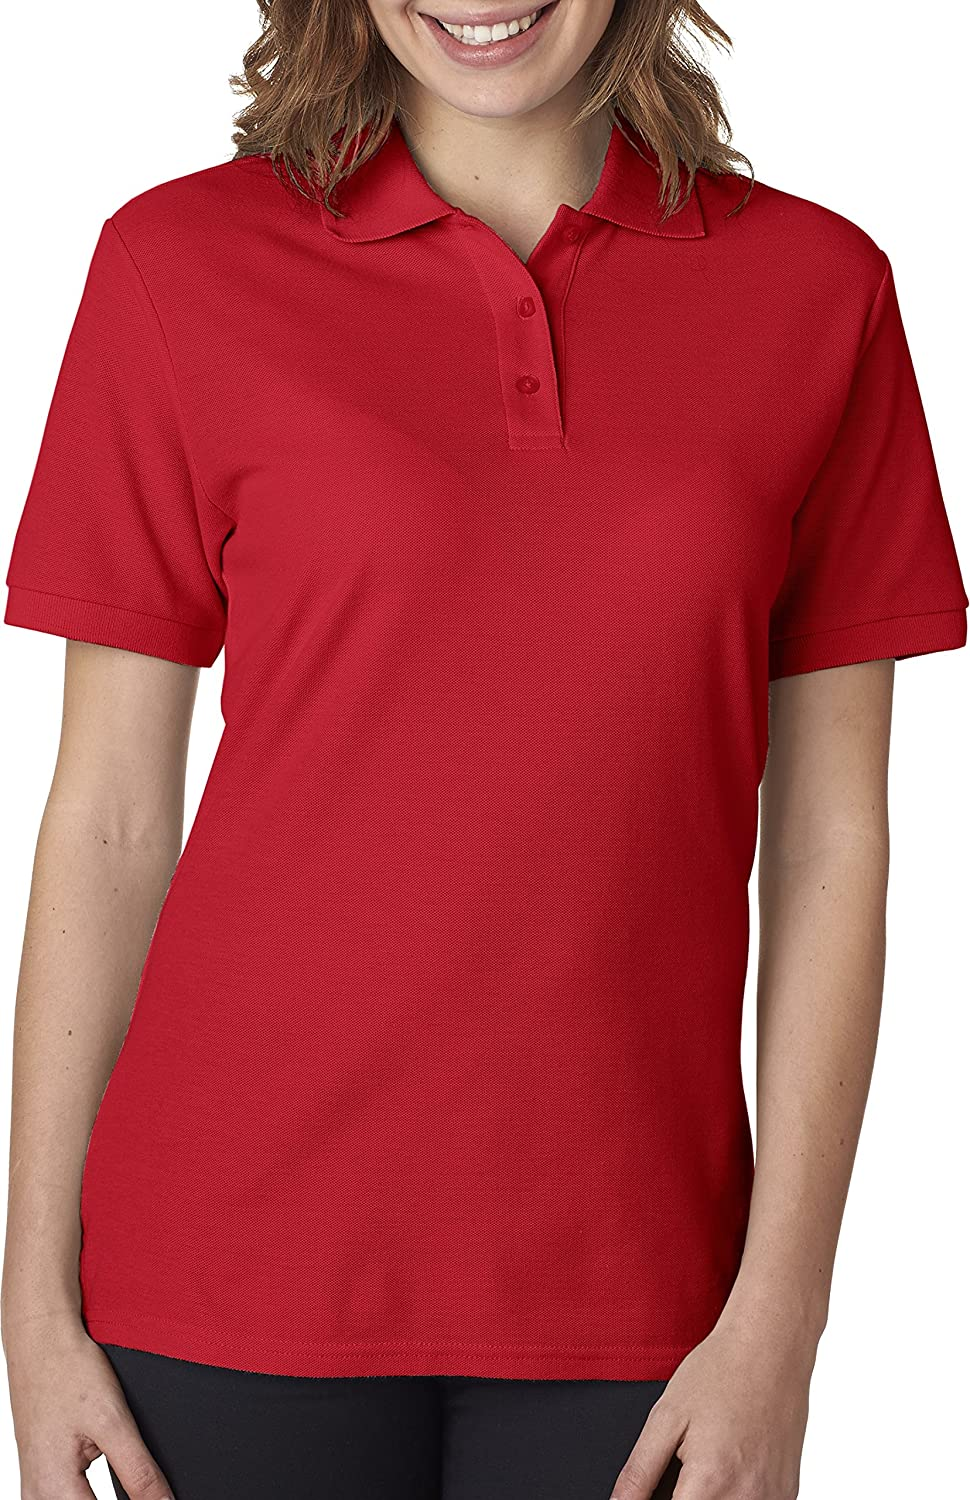 Jerzees Ladies' Easy Care Polo Shirt